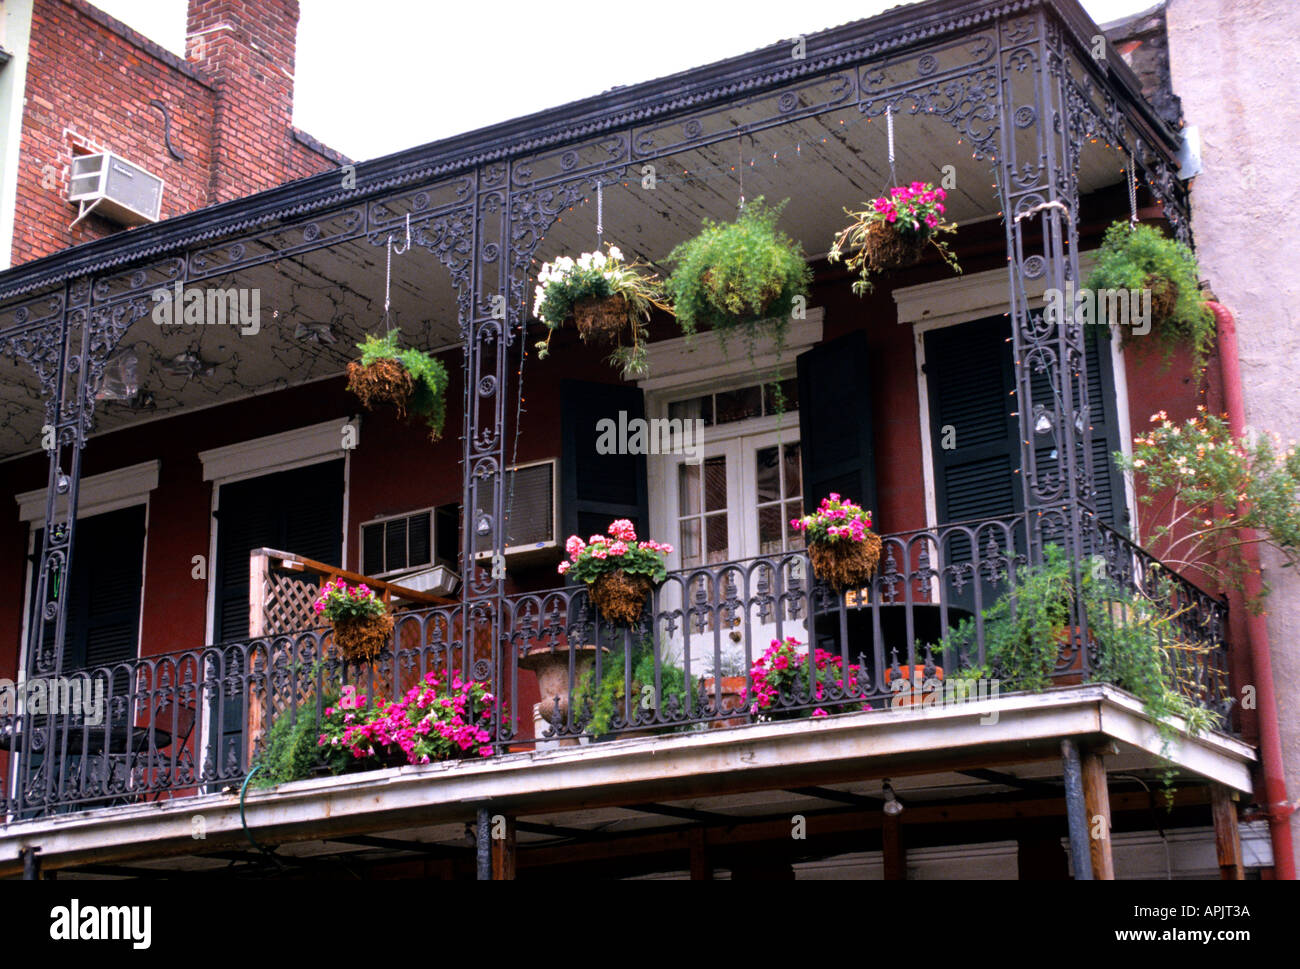 New orleans bourbon street balcony flowers house stock for The balcony cafe